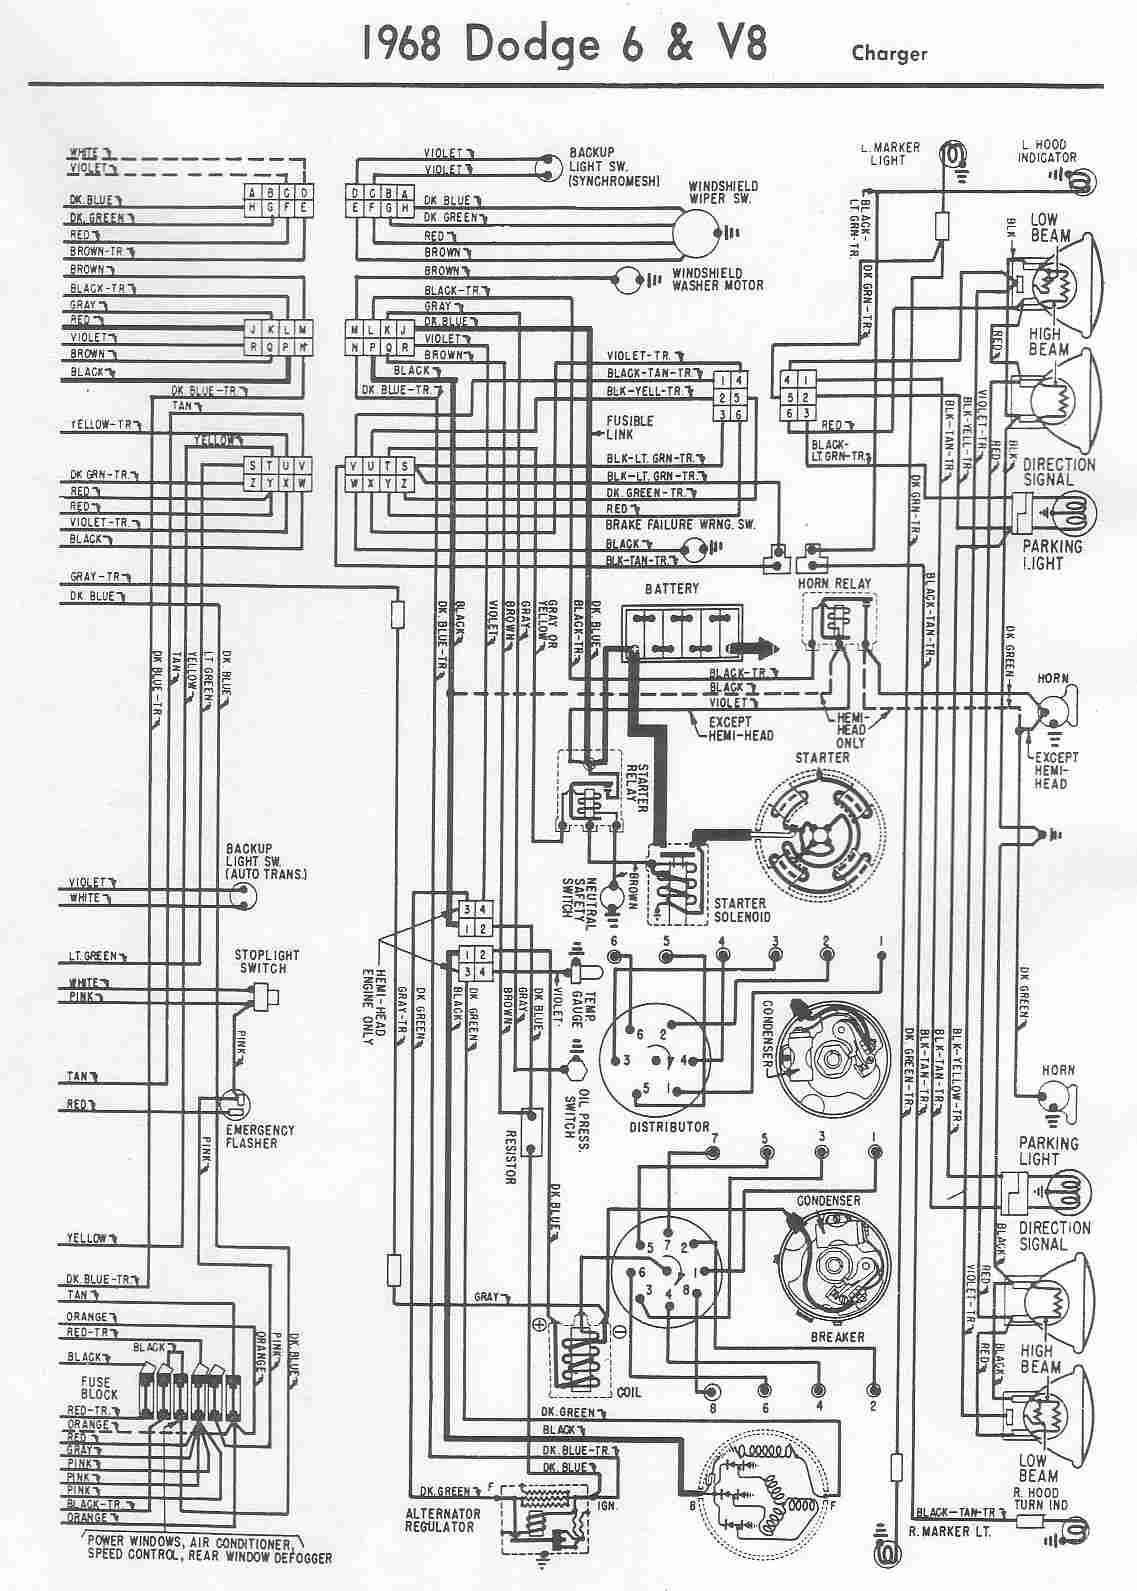 charger electrical wiring diagram of 1968 dodge 6 and v8?t=1508404771 dodge car manuals, wiring diagrams pdf & fault codes 1970 dodge coronet wiring diagram at aneh.co